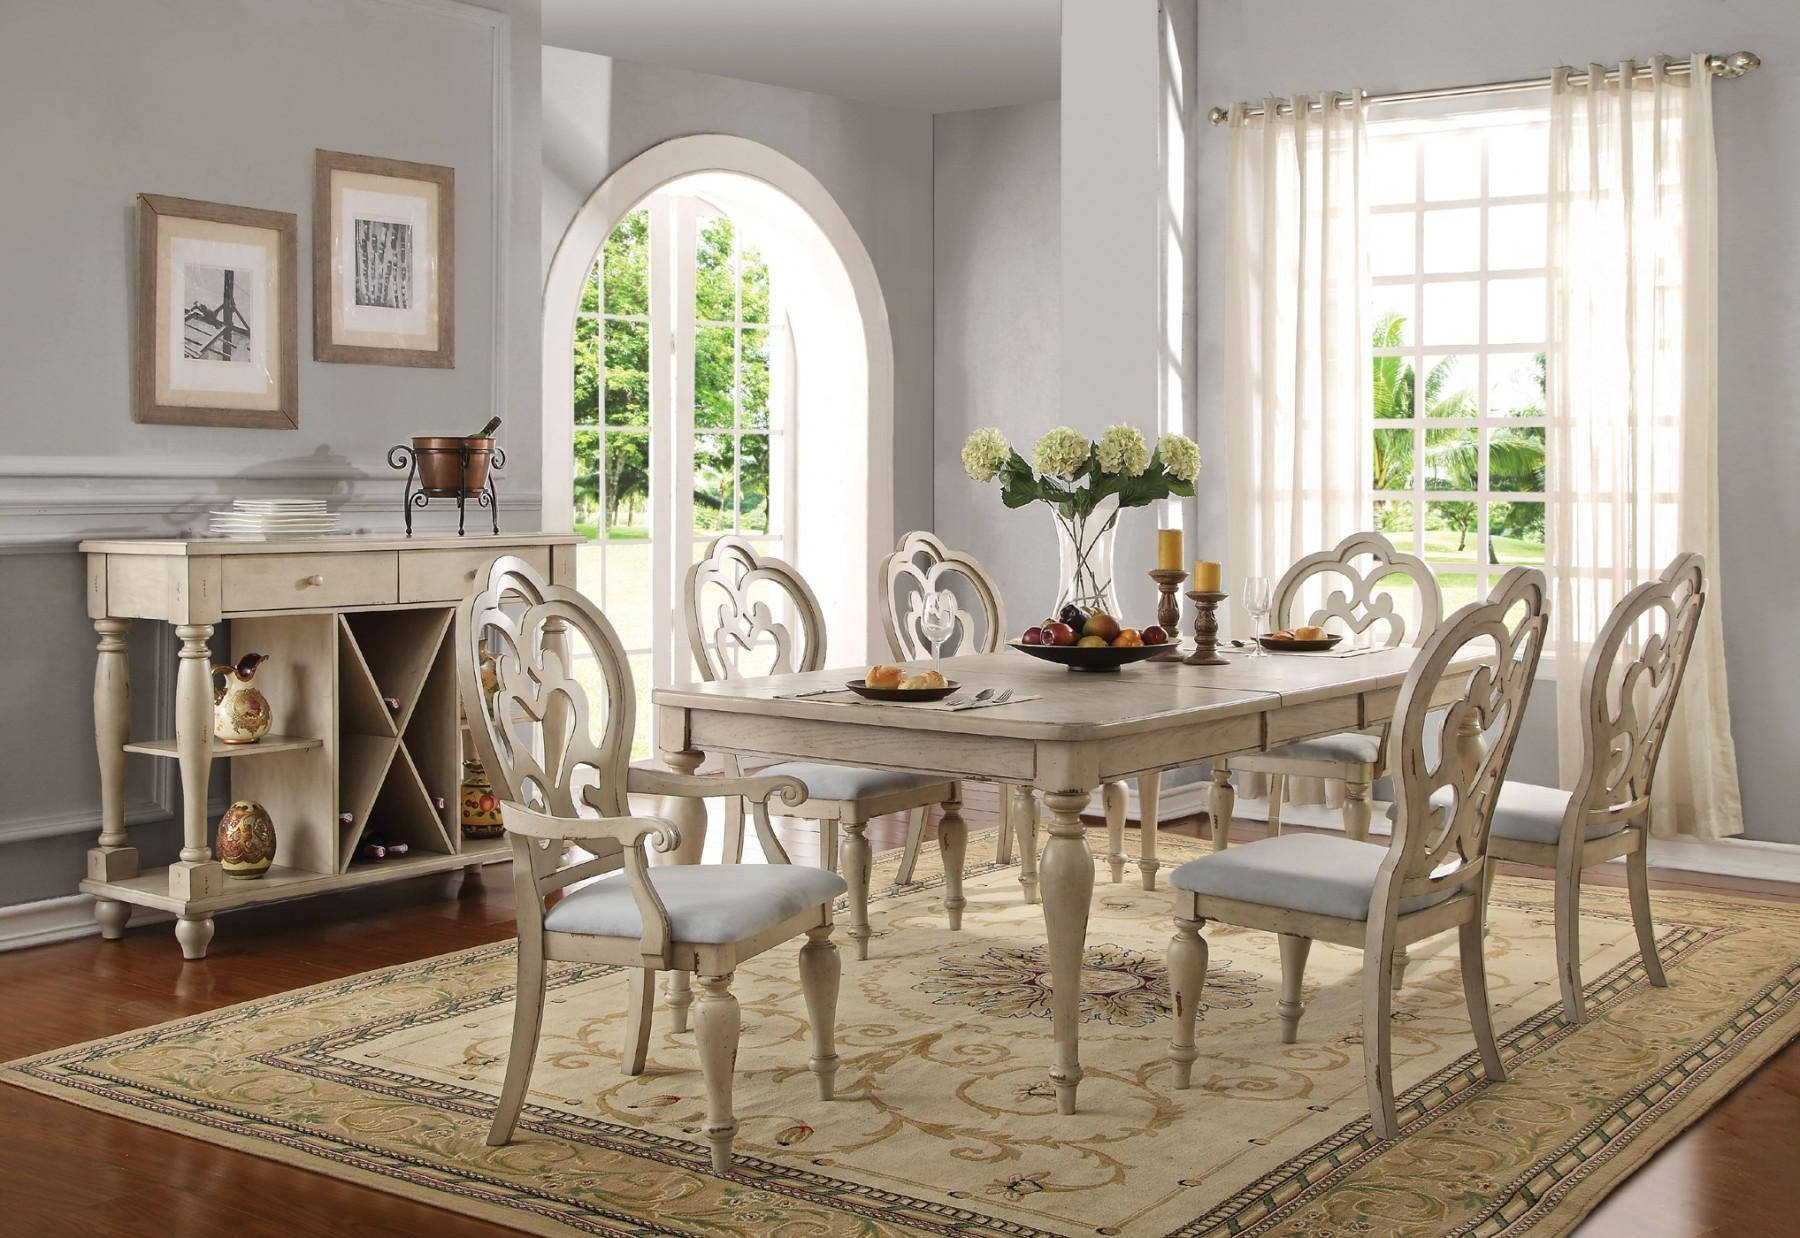 Provence Antique White Dining Table Set 7pcs Acme Furniture For Well Known Provence Accent Dining Tables (View 18 of 30)